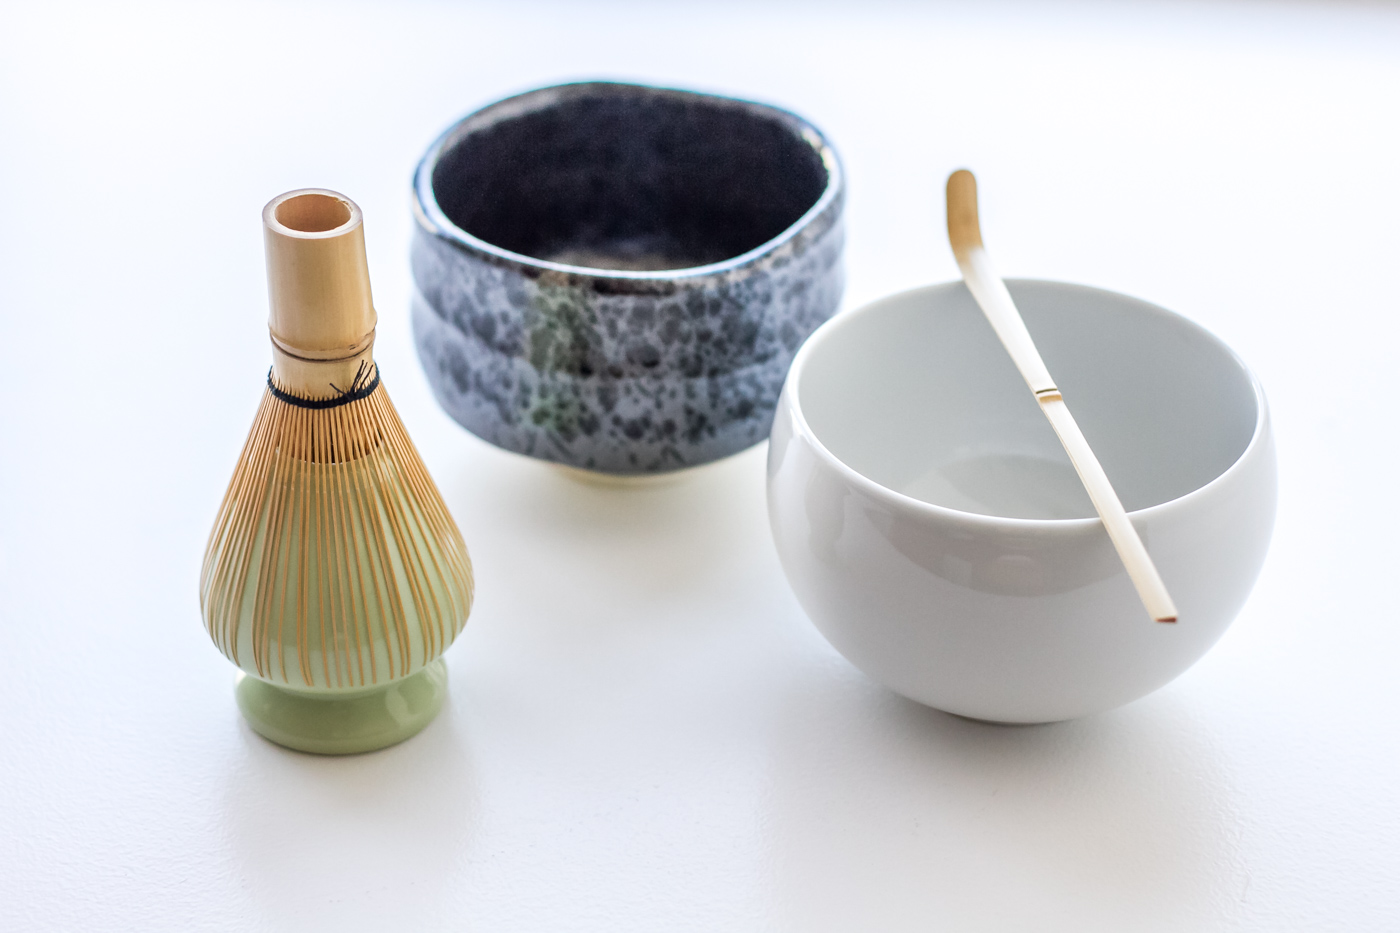 My chasen (matcha bamboo whisk) on its holder, my two chawans (matcha tea bowls) and bamboo tea scoop (chashaku).